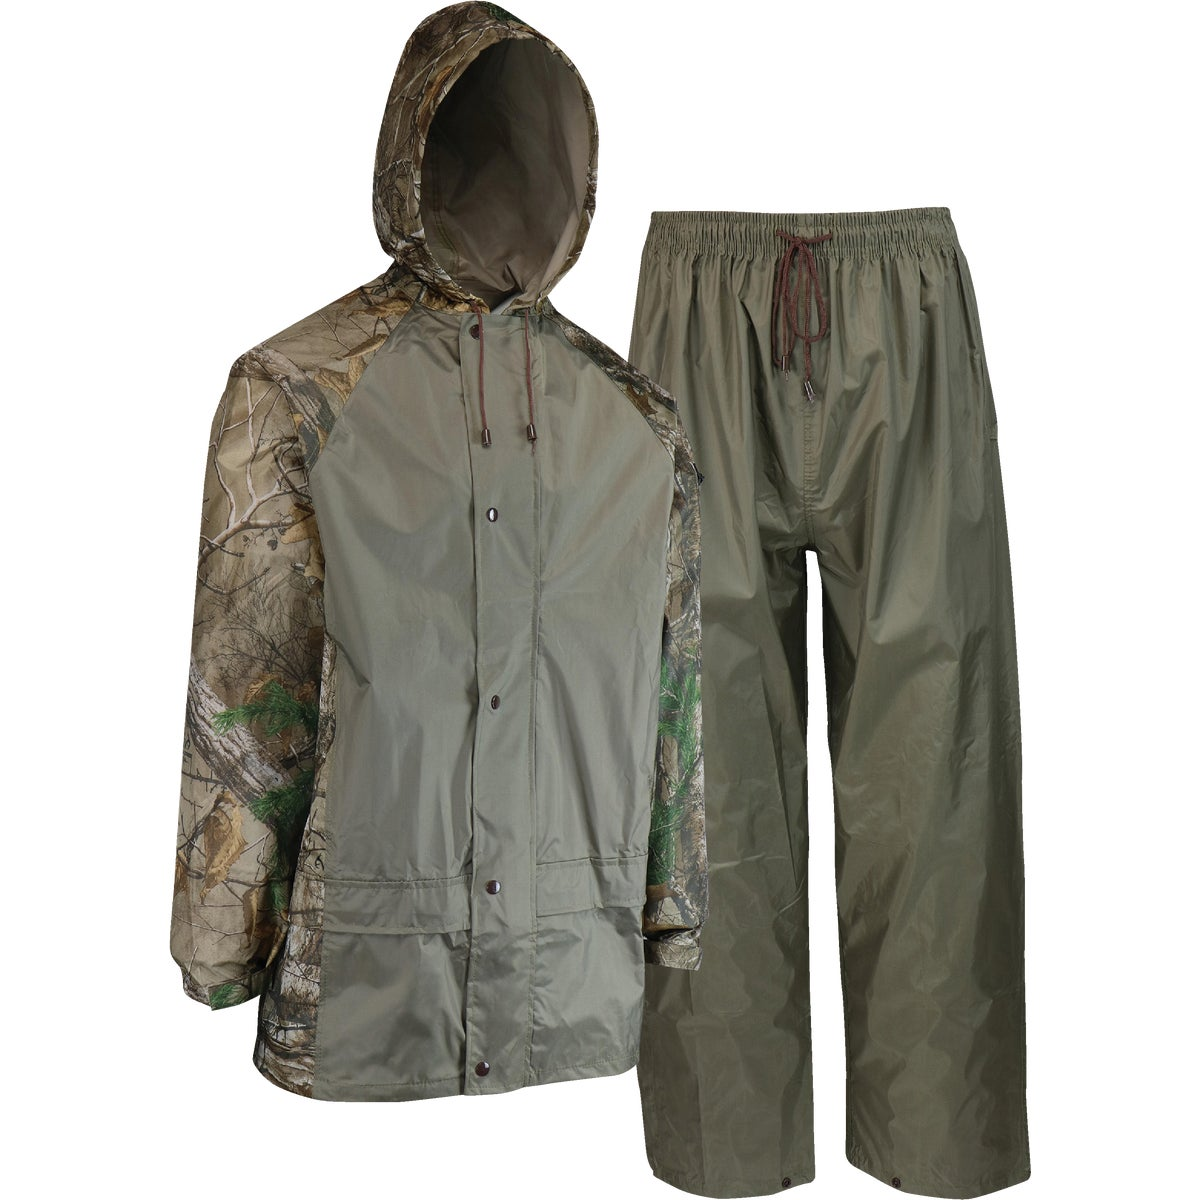 West Chester 2-Piece RealTree Camo Rain Suit, RE46200/L